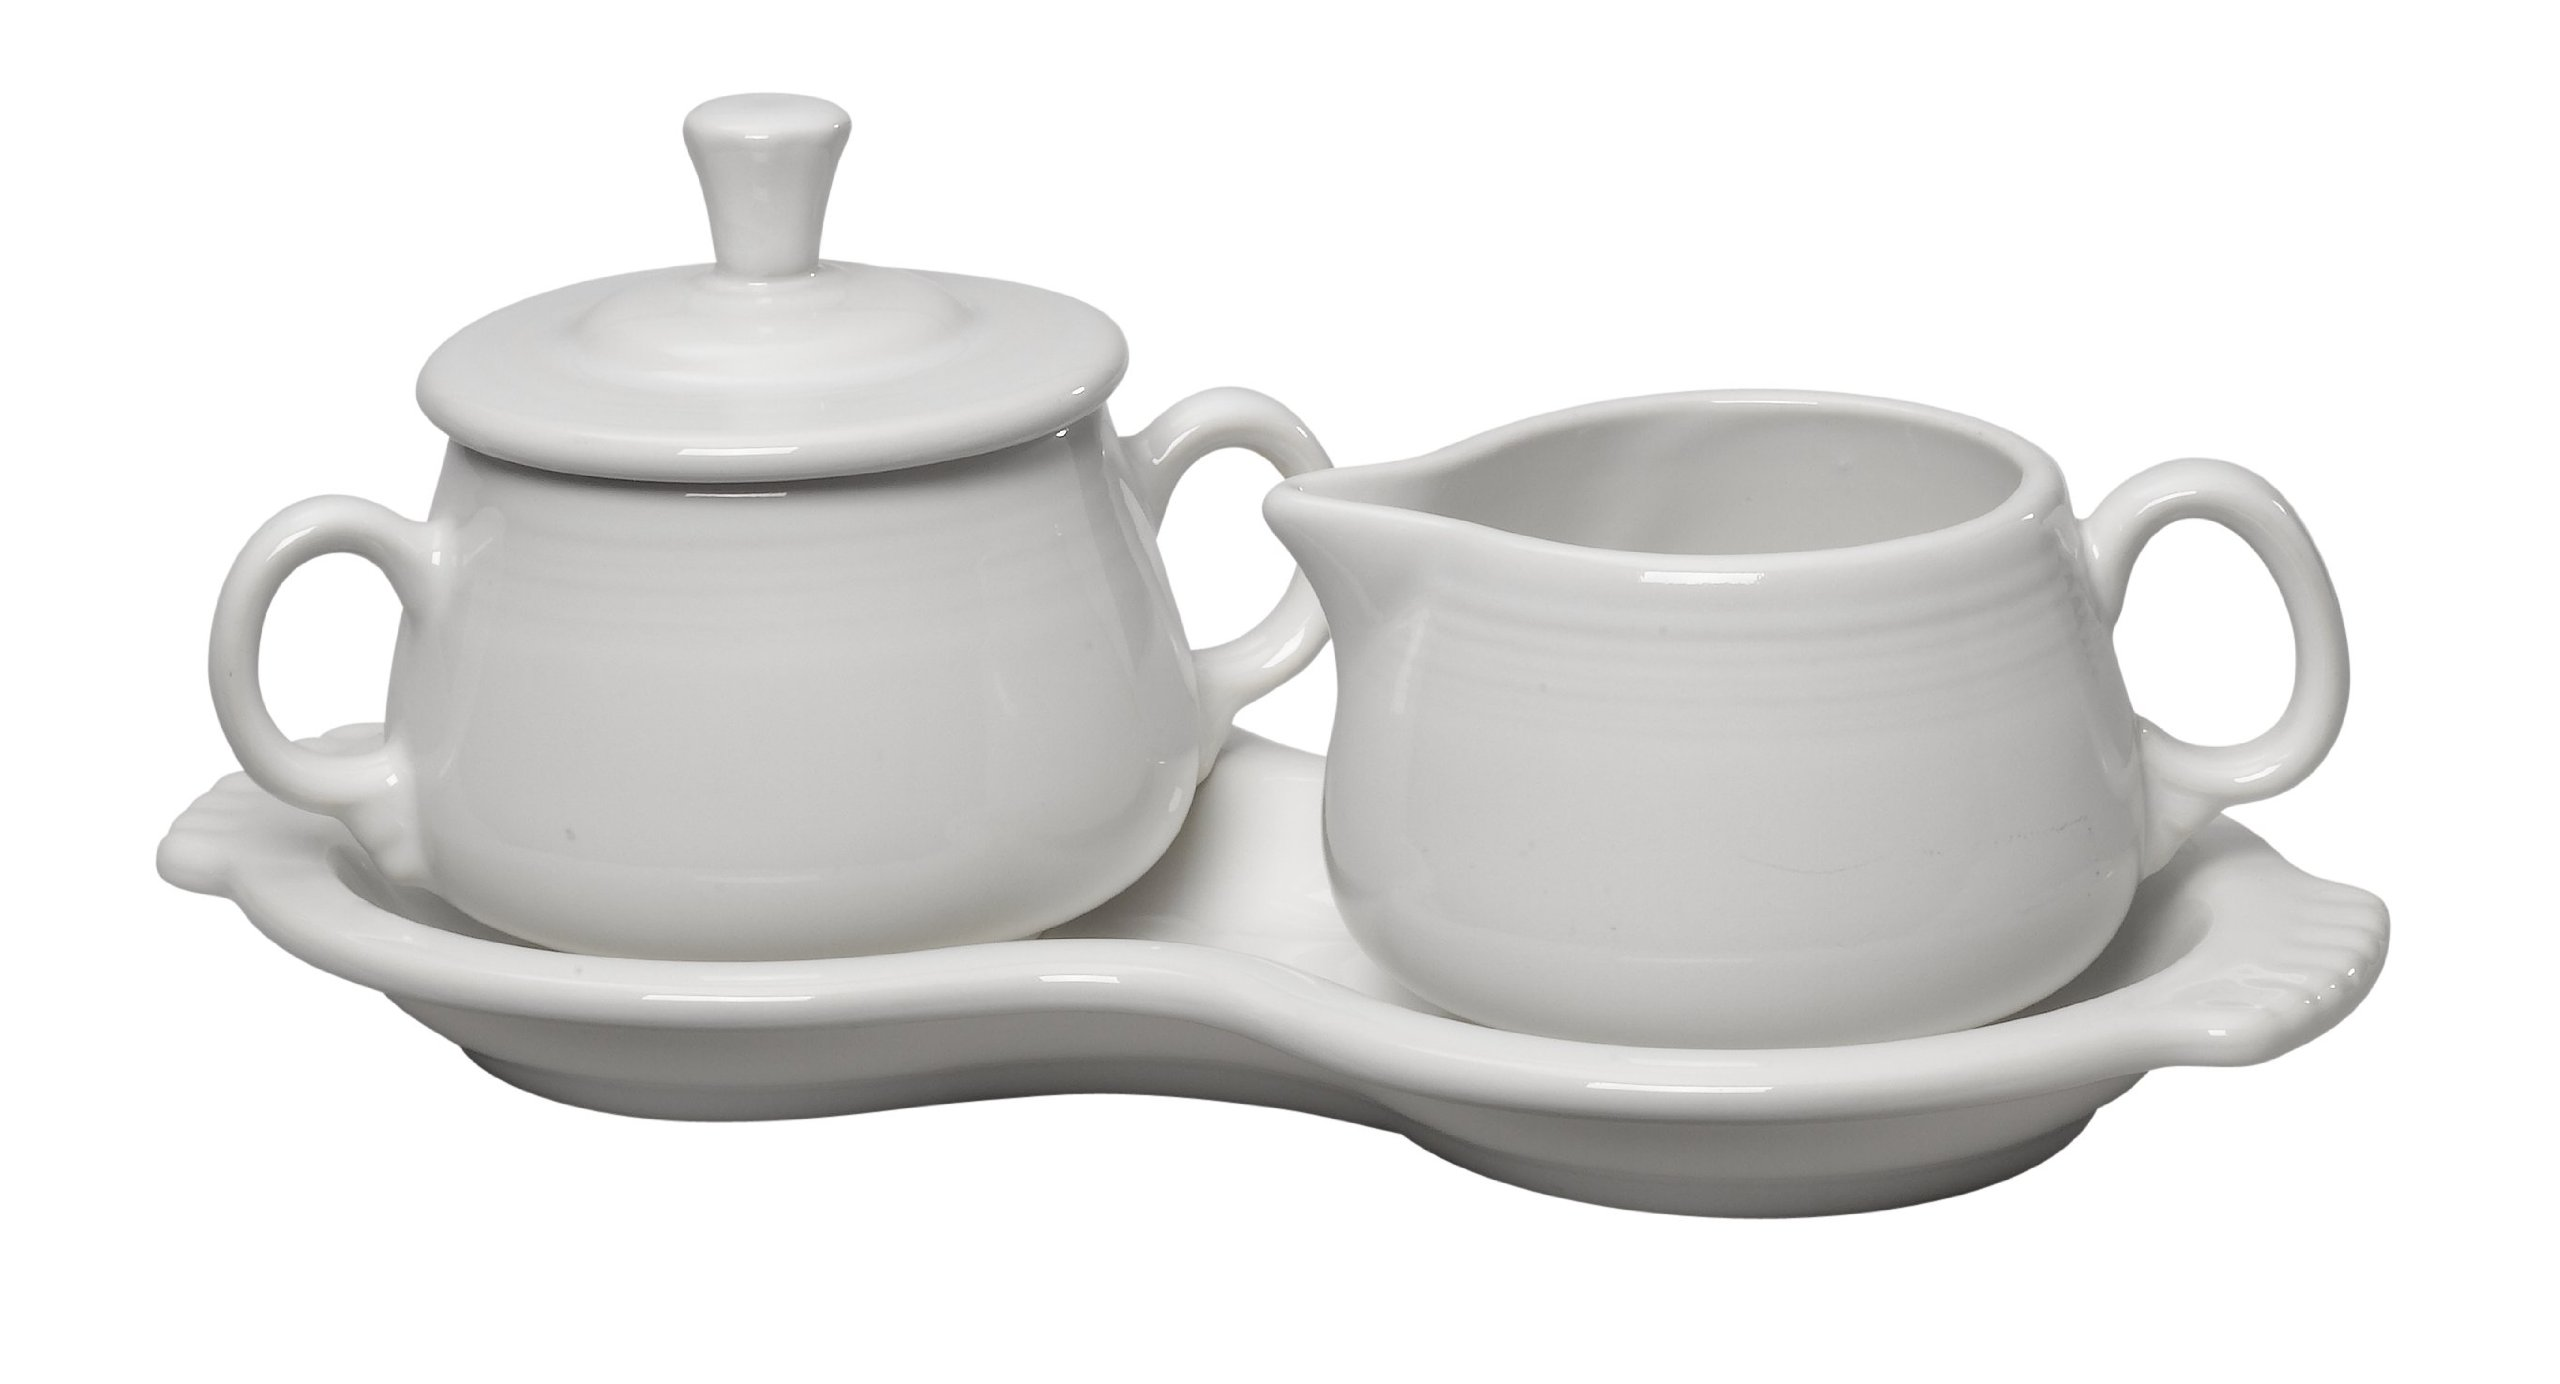 Fiesta Covered Creamer and Sugar Set with Tray, White by Homer Laughlin